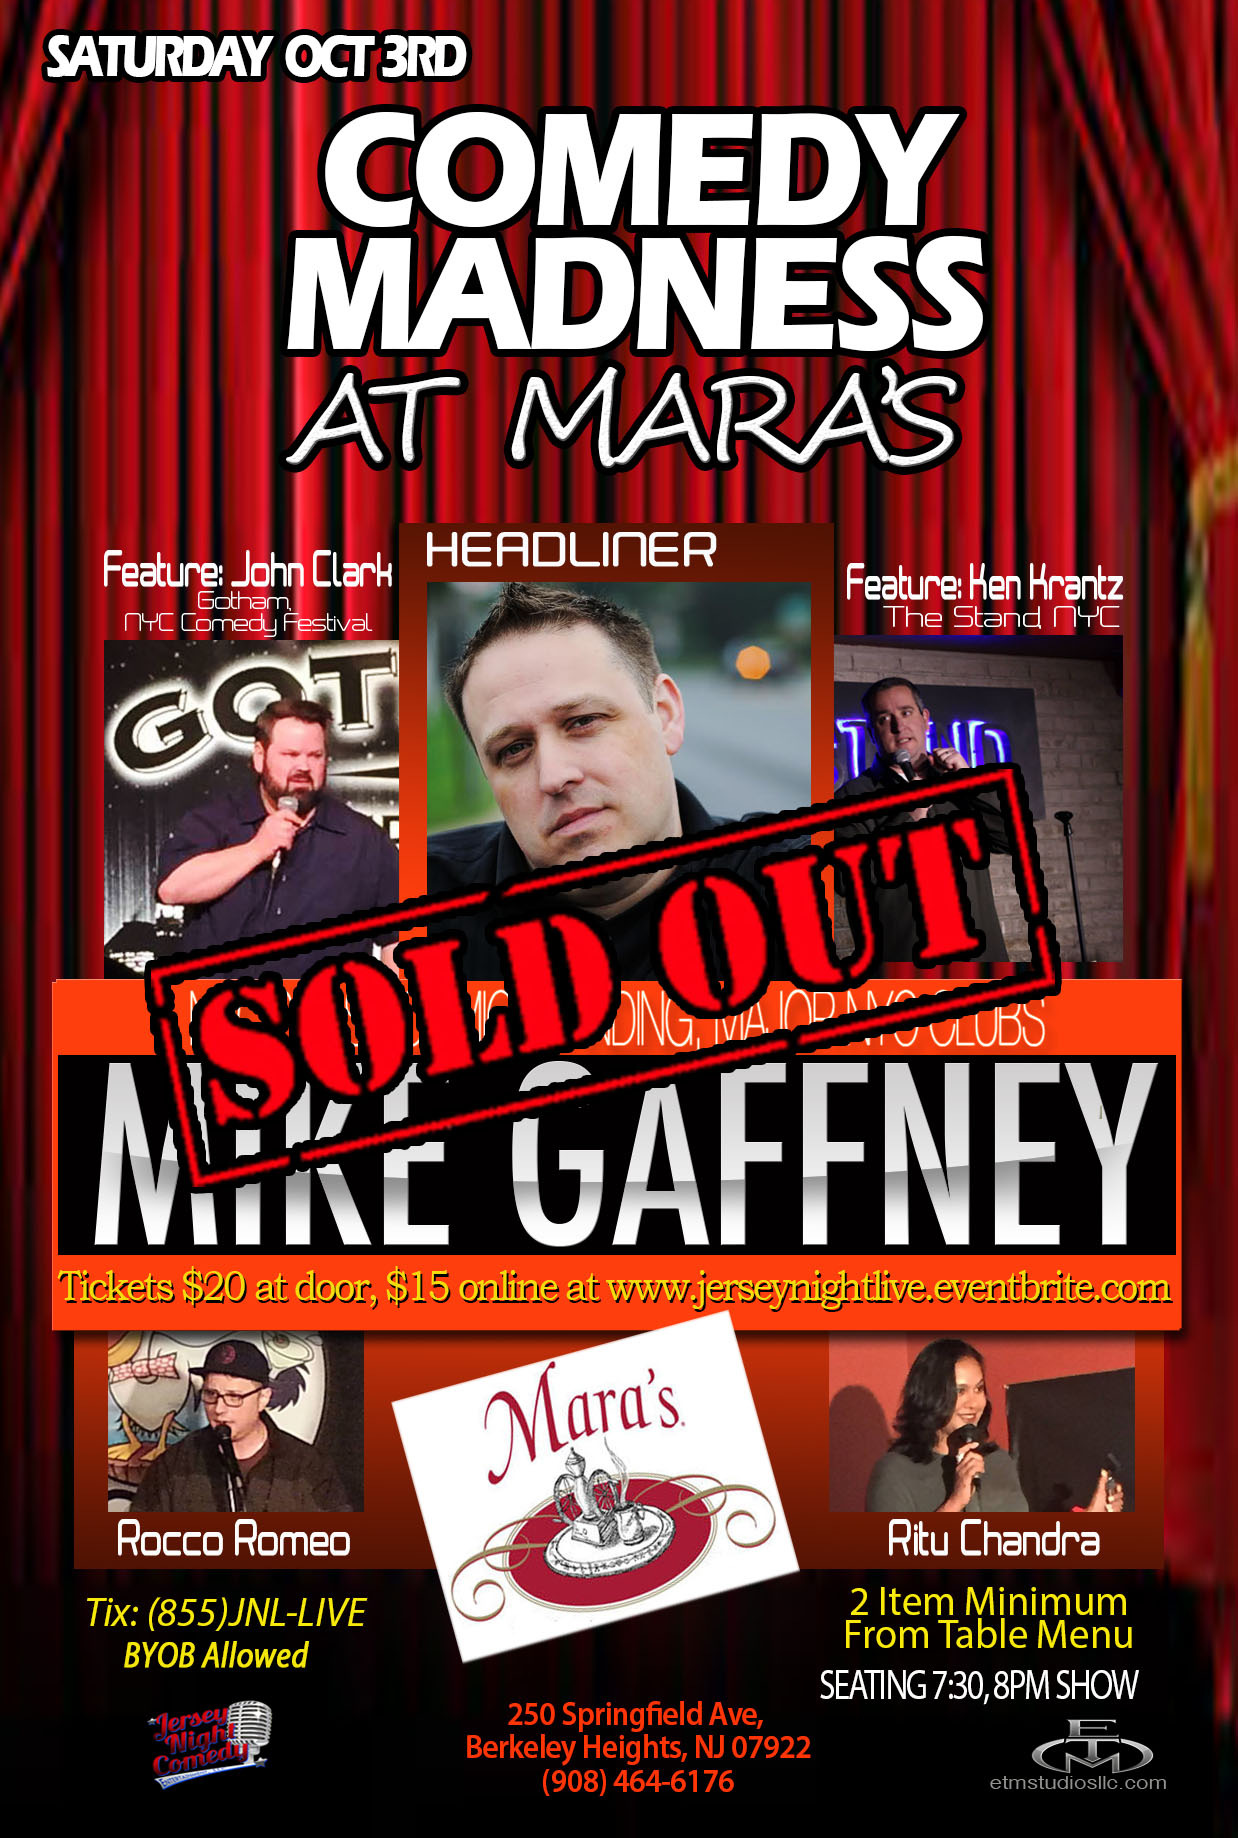 MARAS-Gaffney-v6-Sold-Out